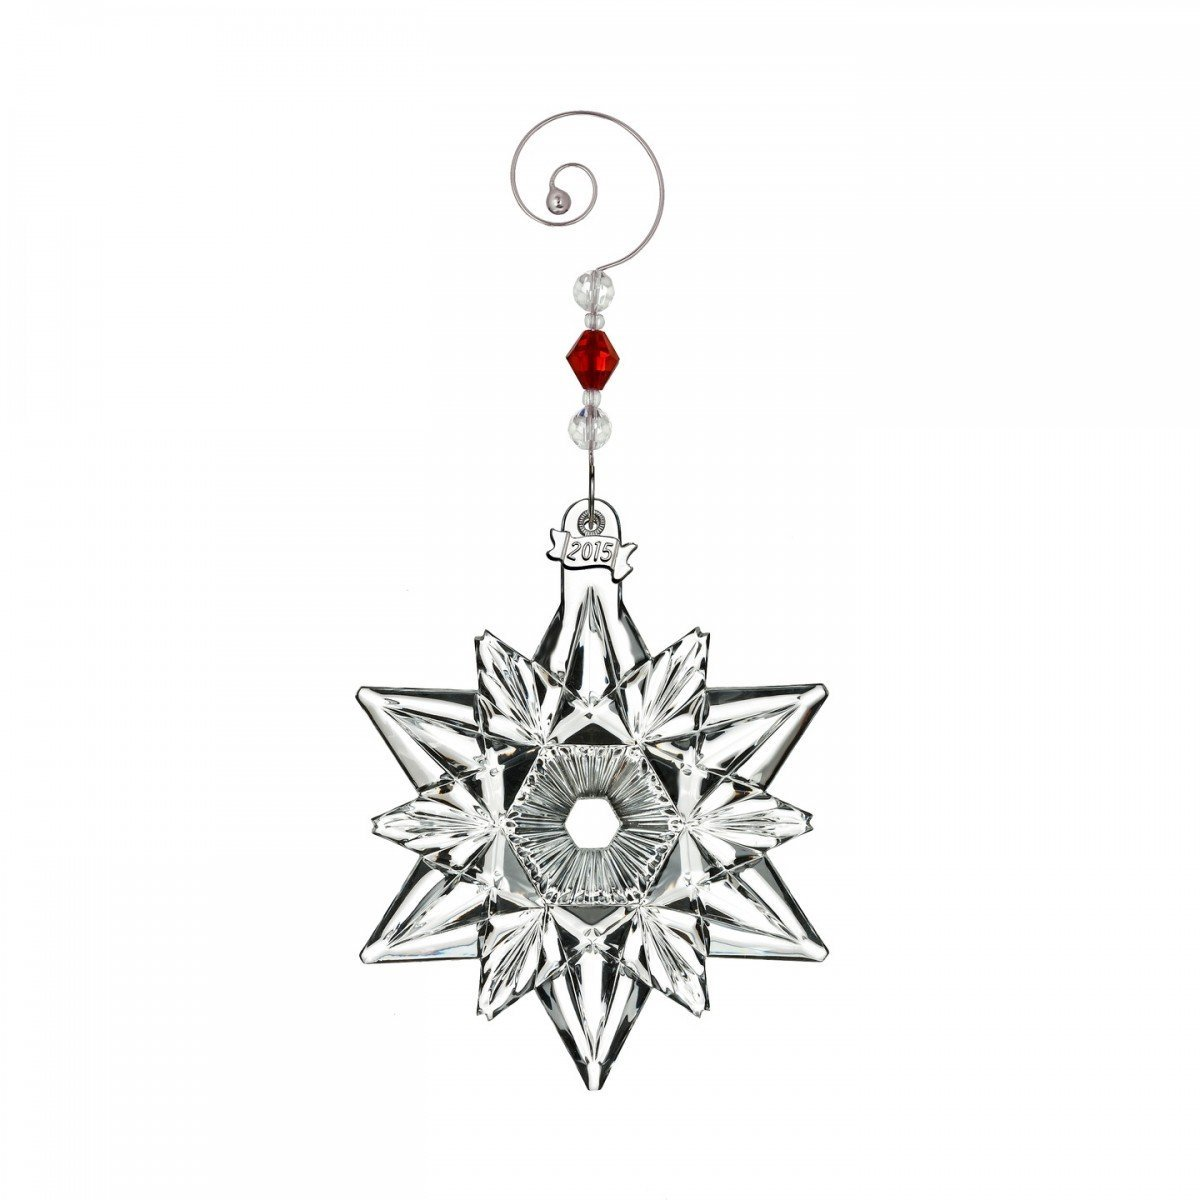 2015 Waterford Annual Snow Crystal Pierced Snowflake Christmas Ornament